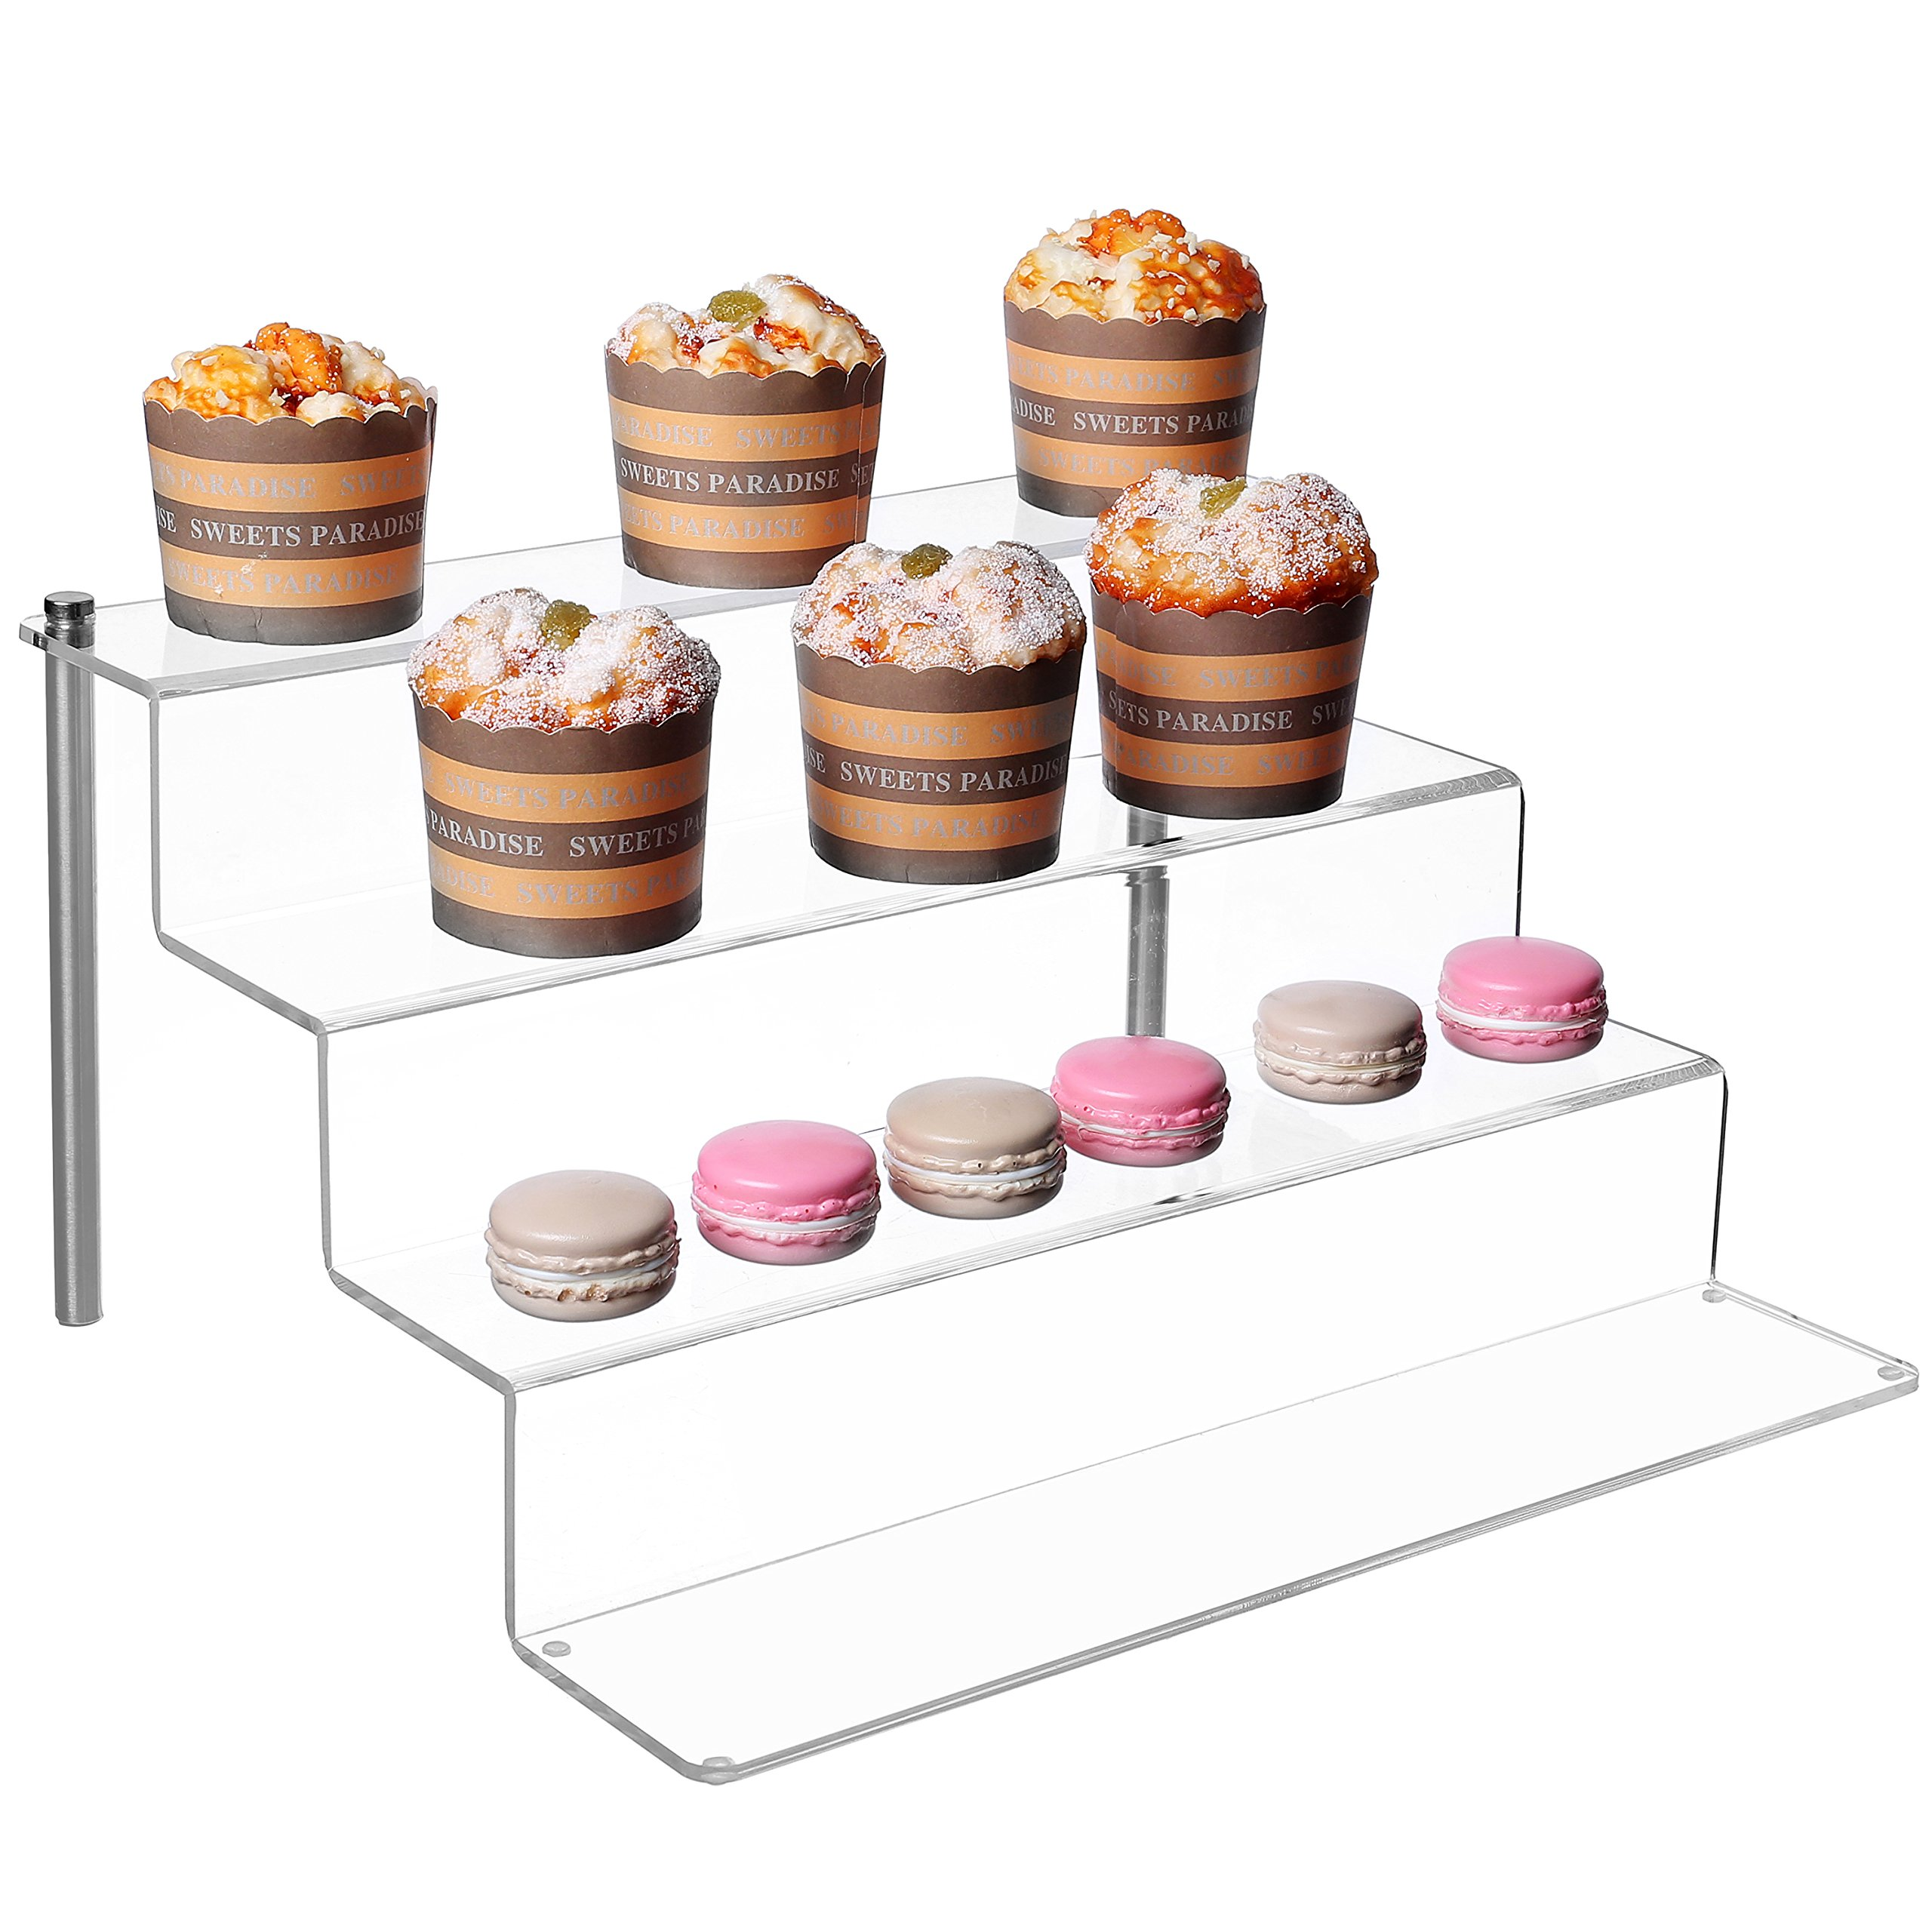 12-Inch W by 11.5-Inch D Clear Acrylic Shelf & Metal Cupcake Stand / 4-Tier Display Riser Rack